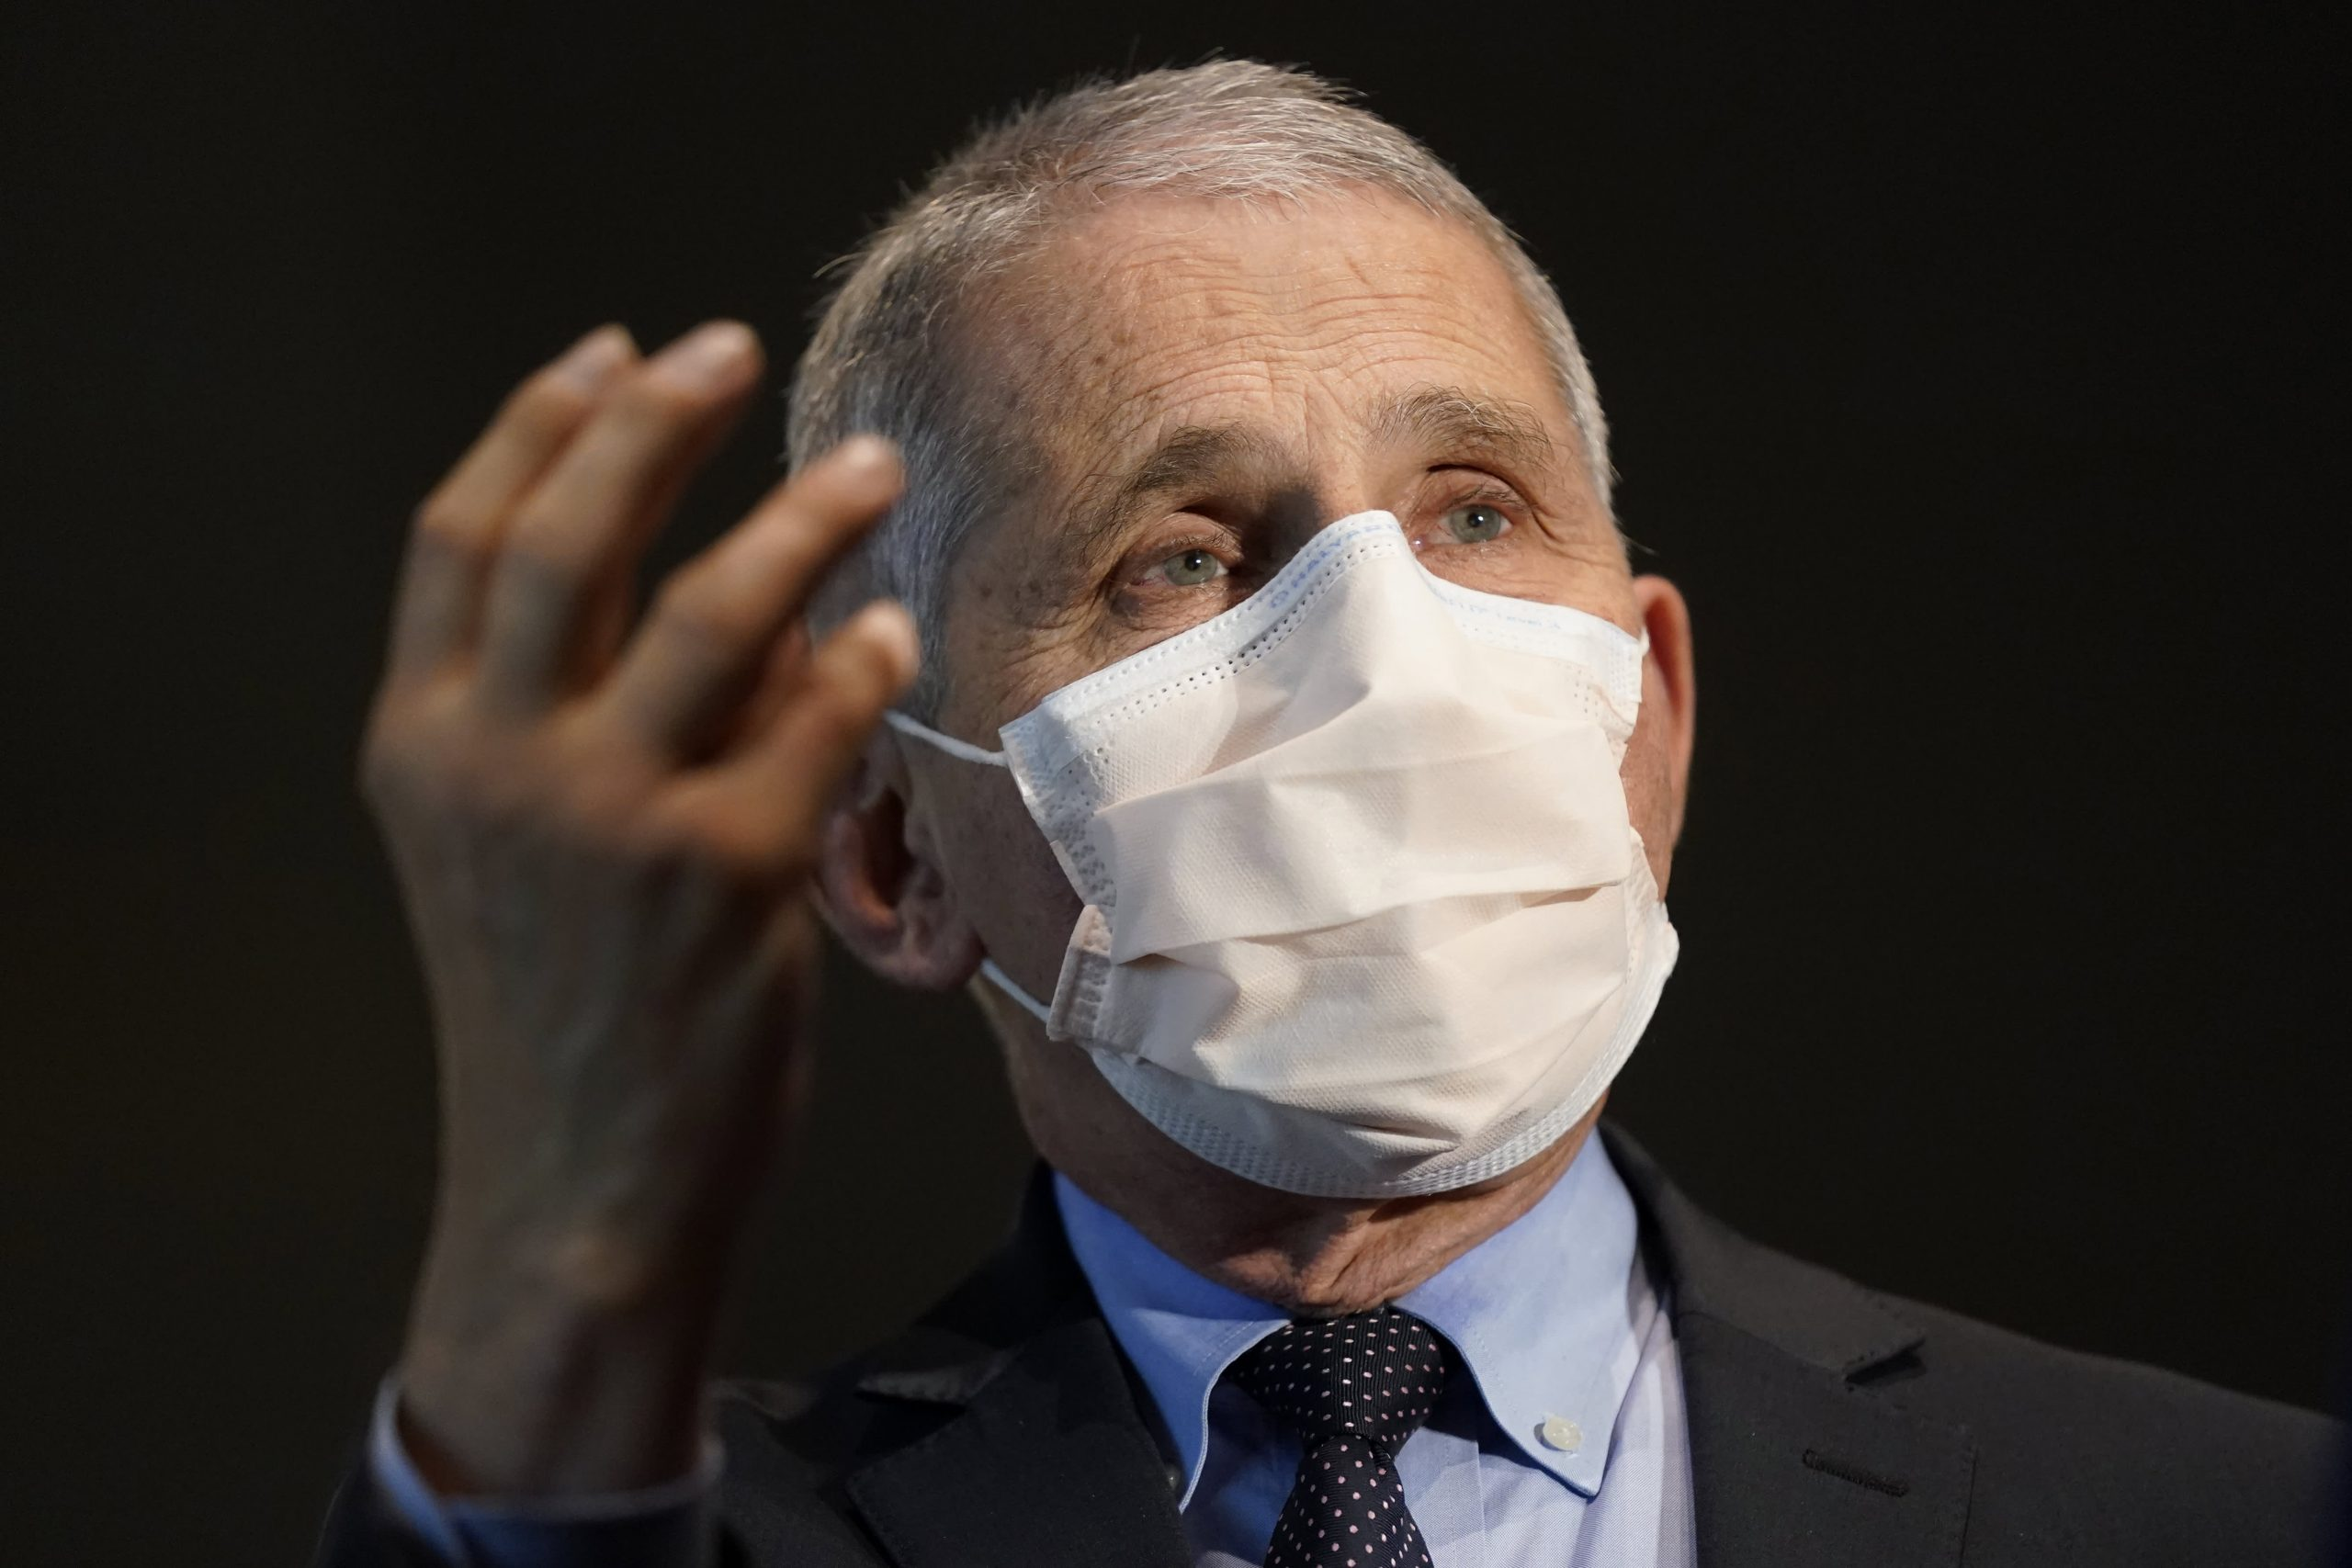 dr-fauci-says-slow-covid-vaccine-rollout-has-been-disappointing